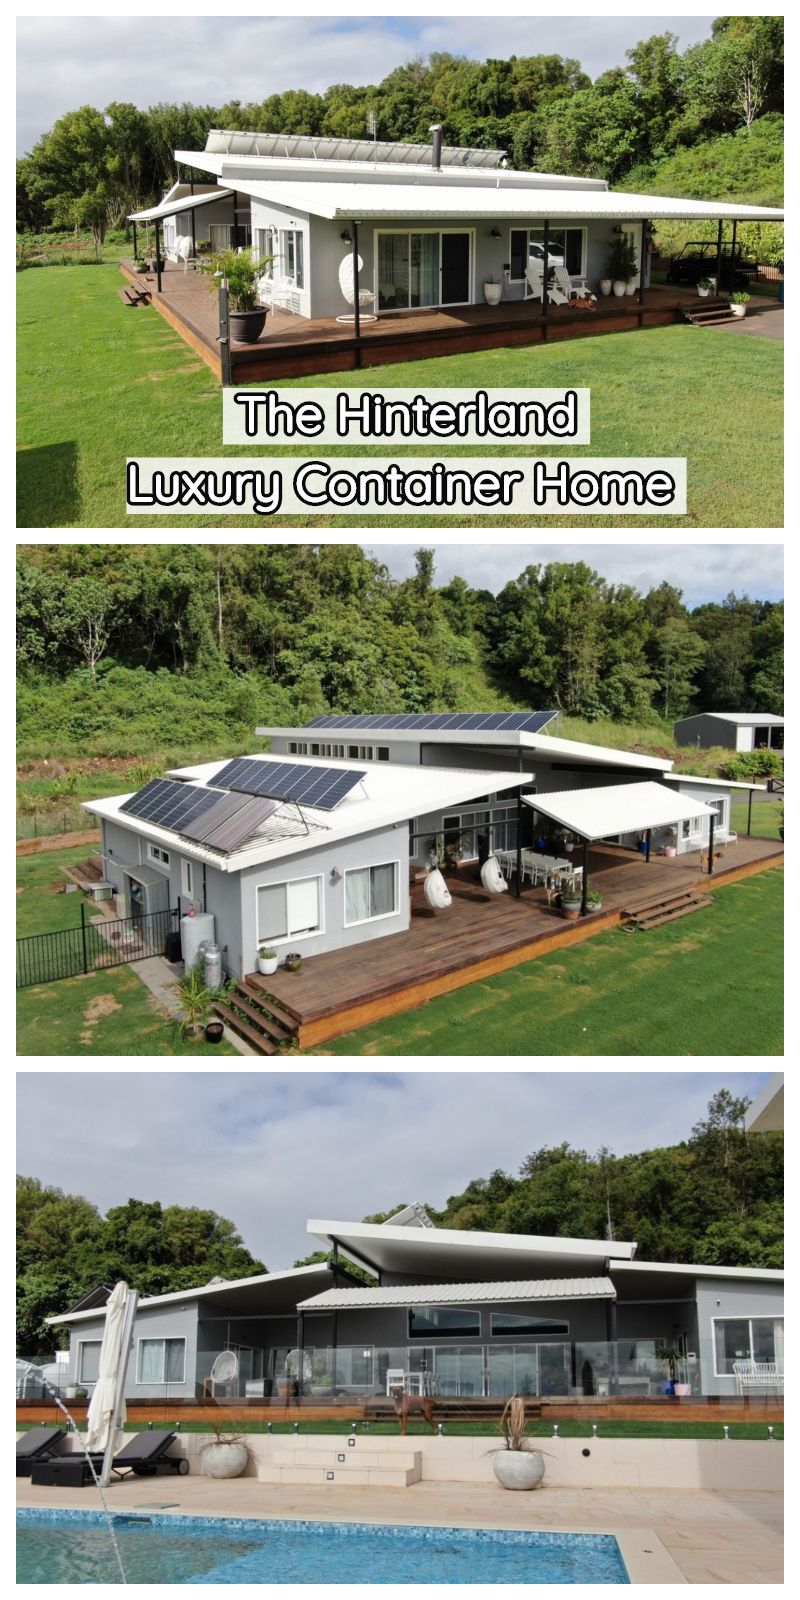 The Hinterland Luxury Container Home